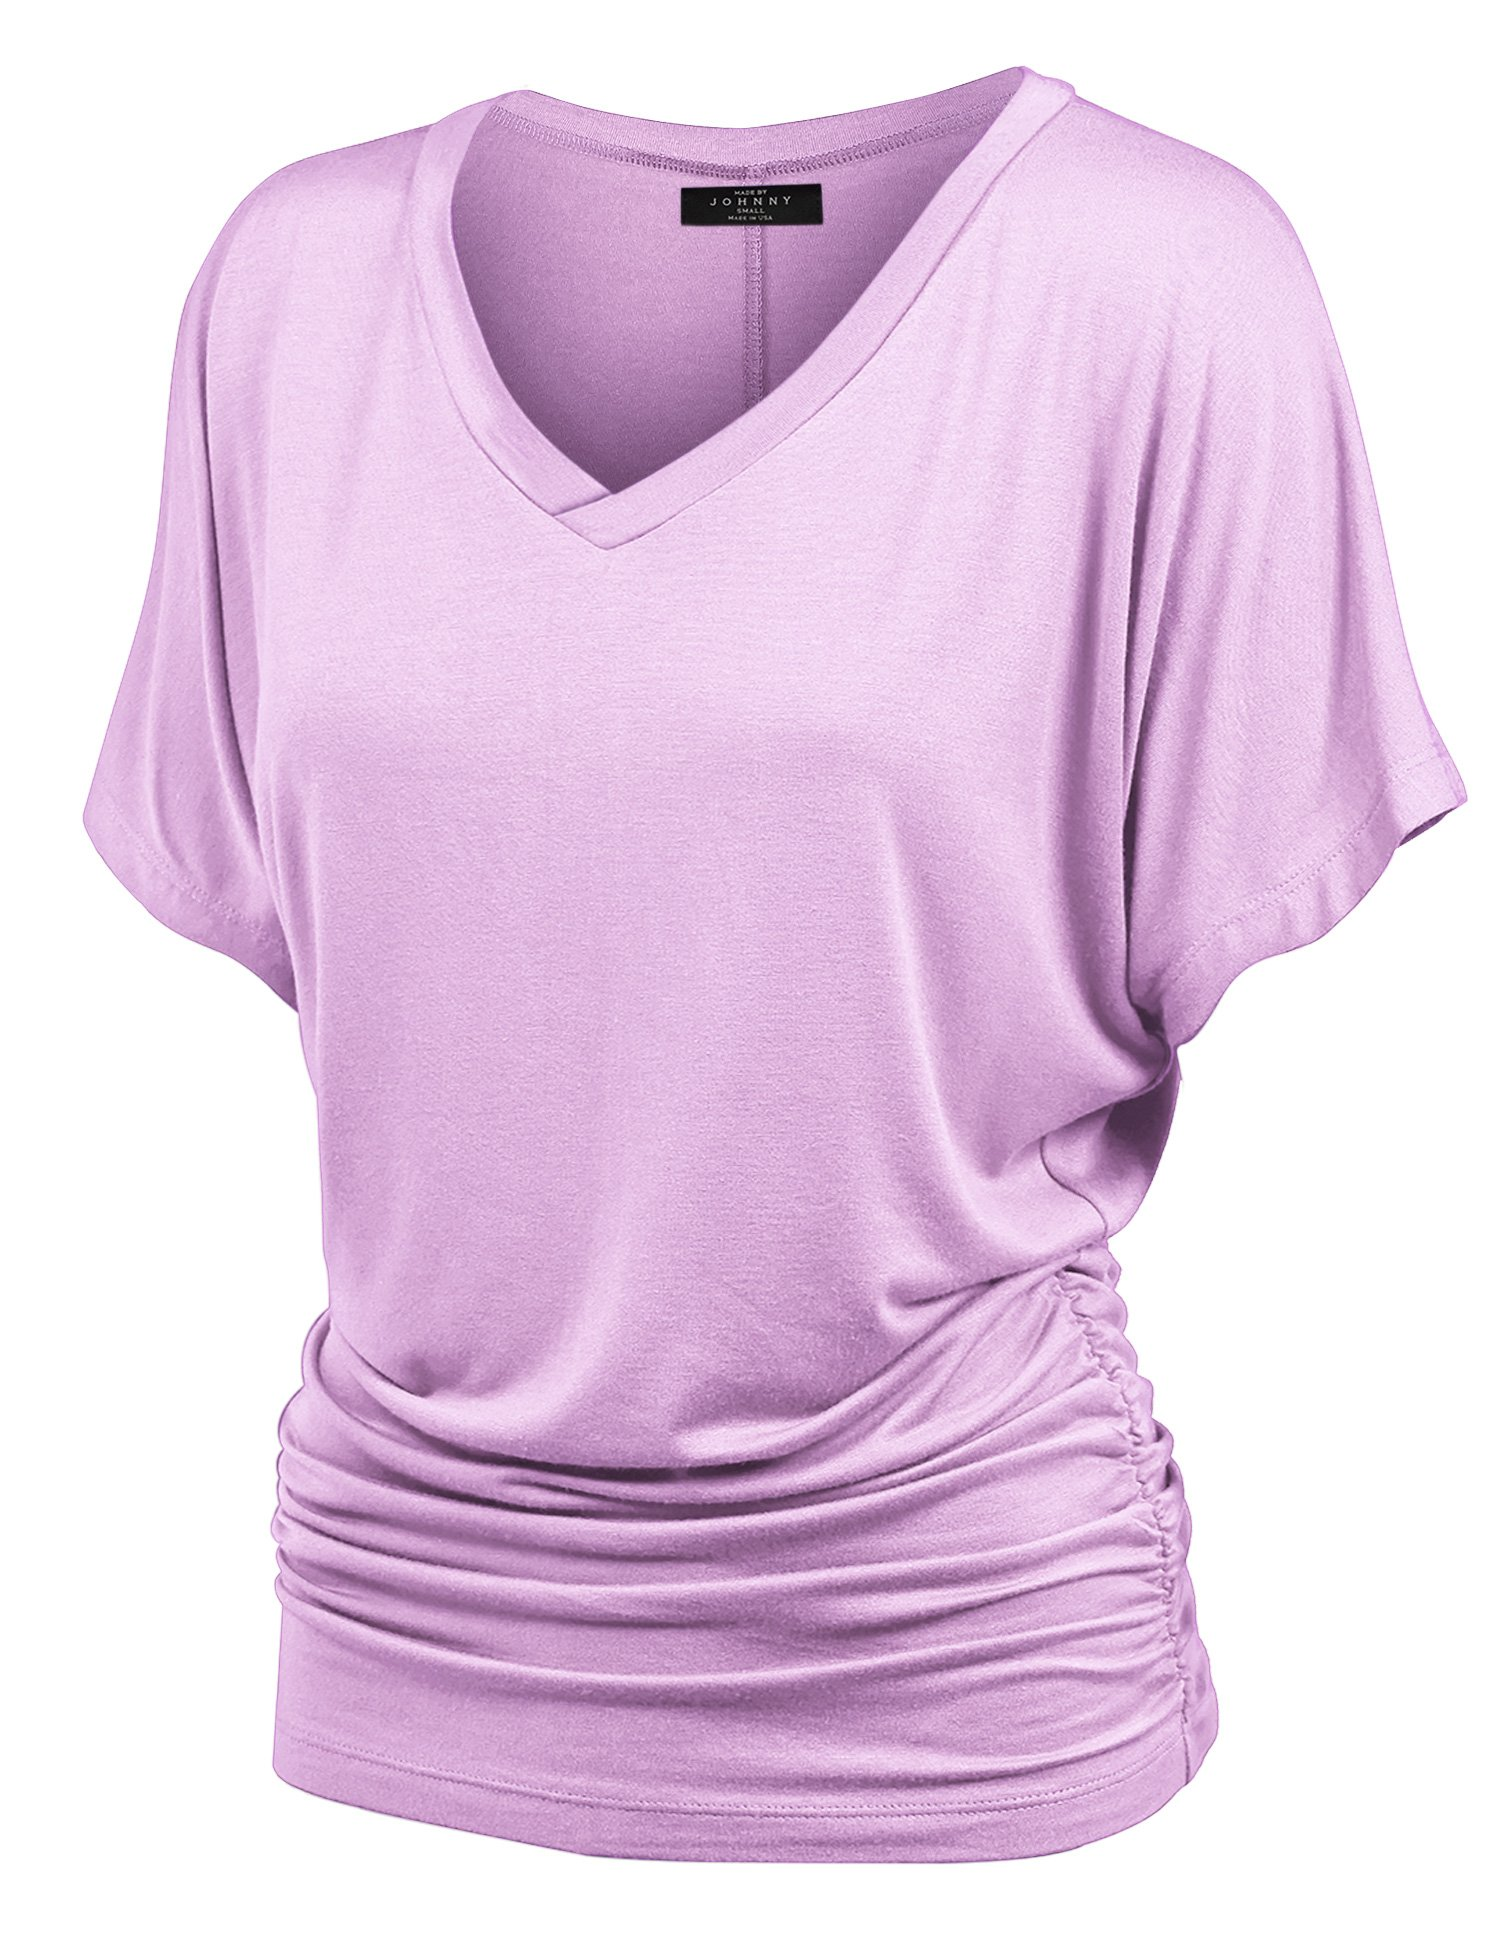 MBJ WT1037 V Neck Short Sleeve Dolman Top with Side Shirring M Lilac